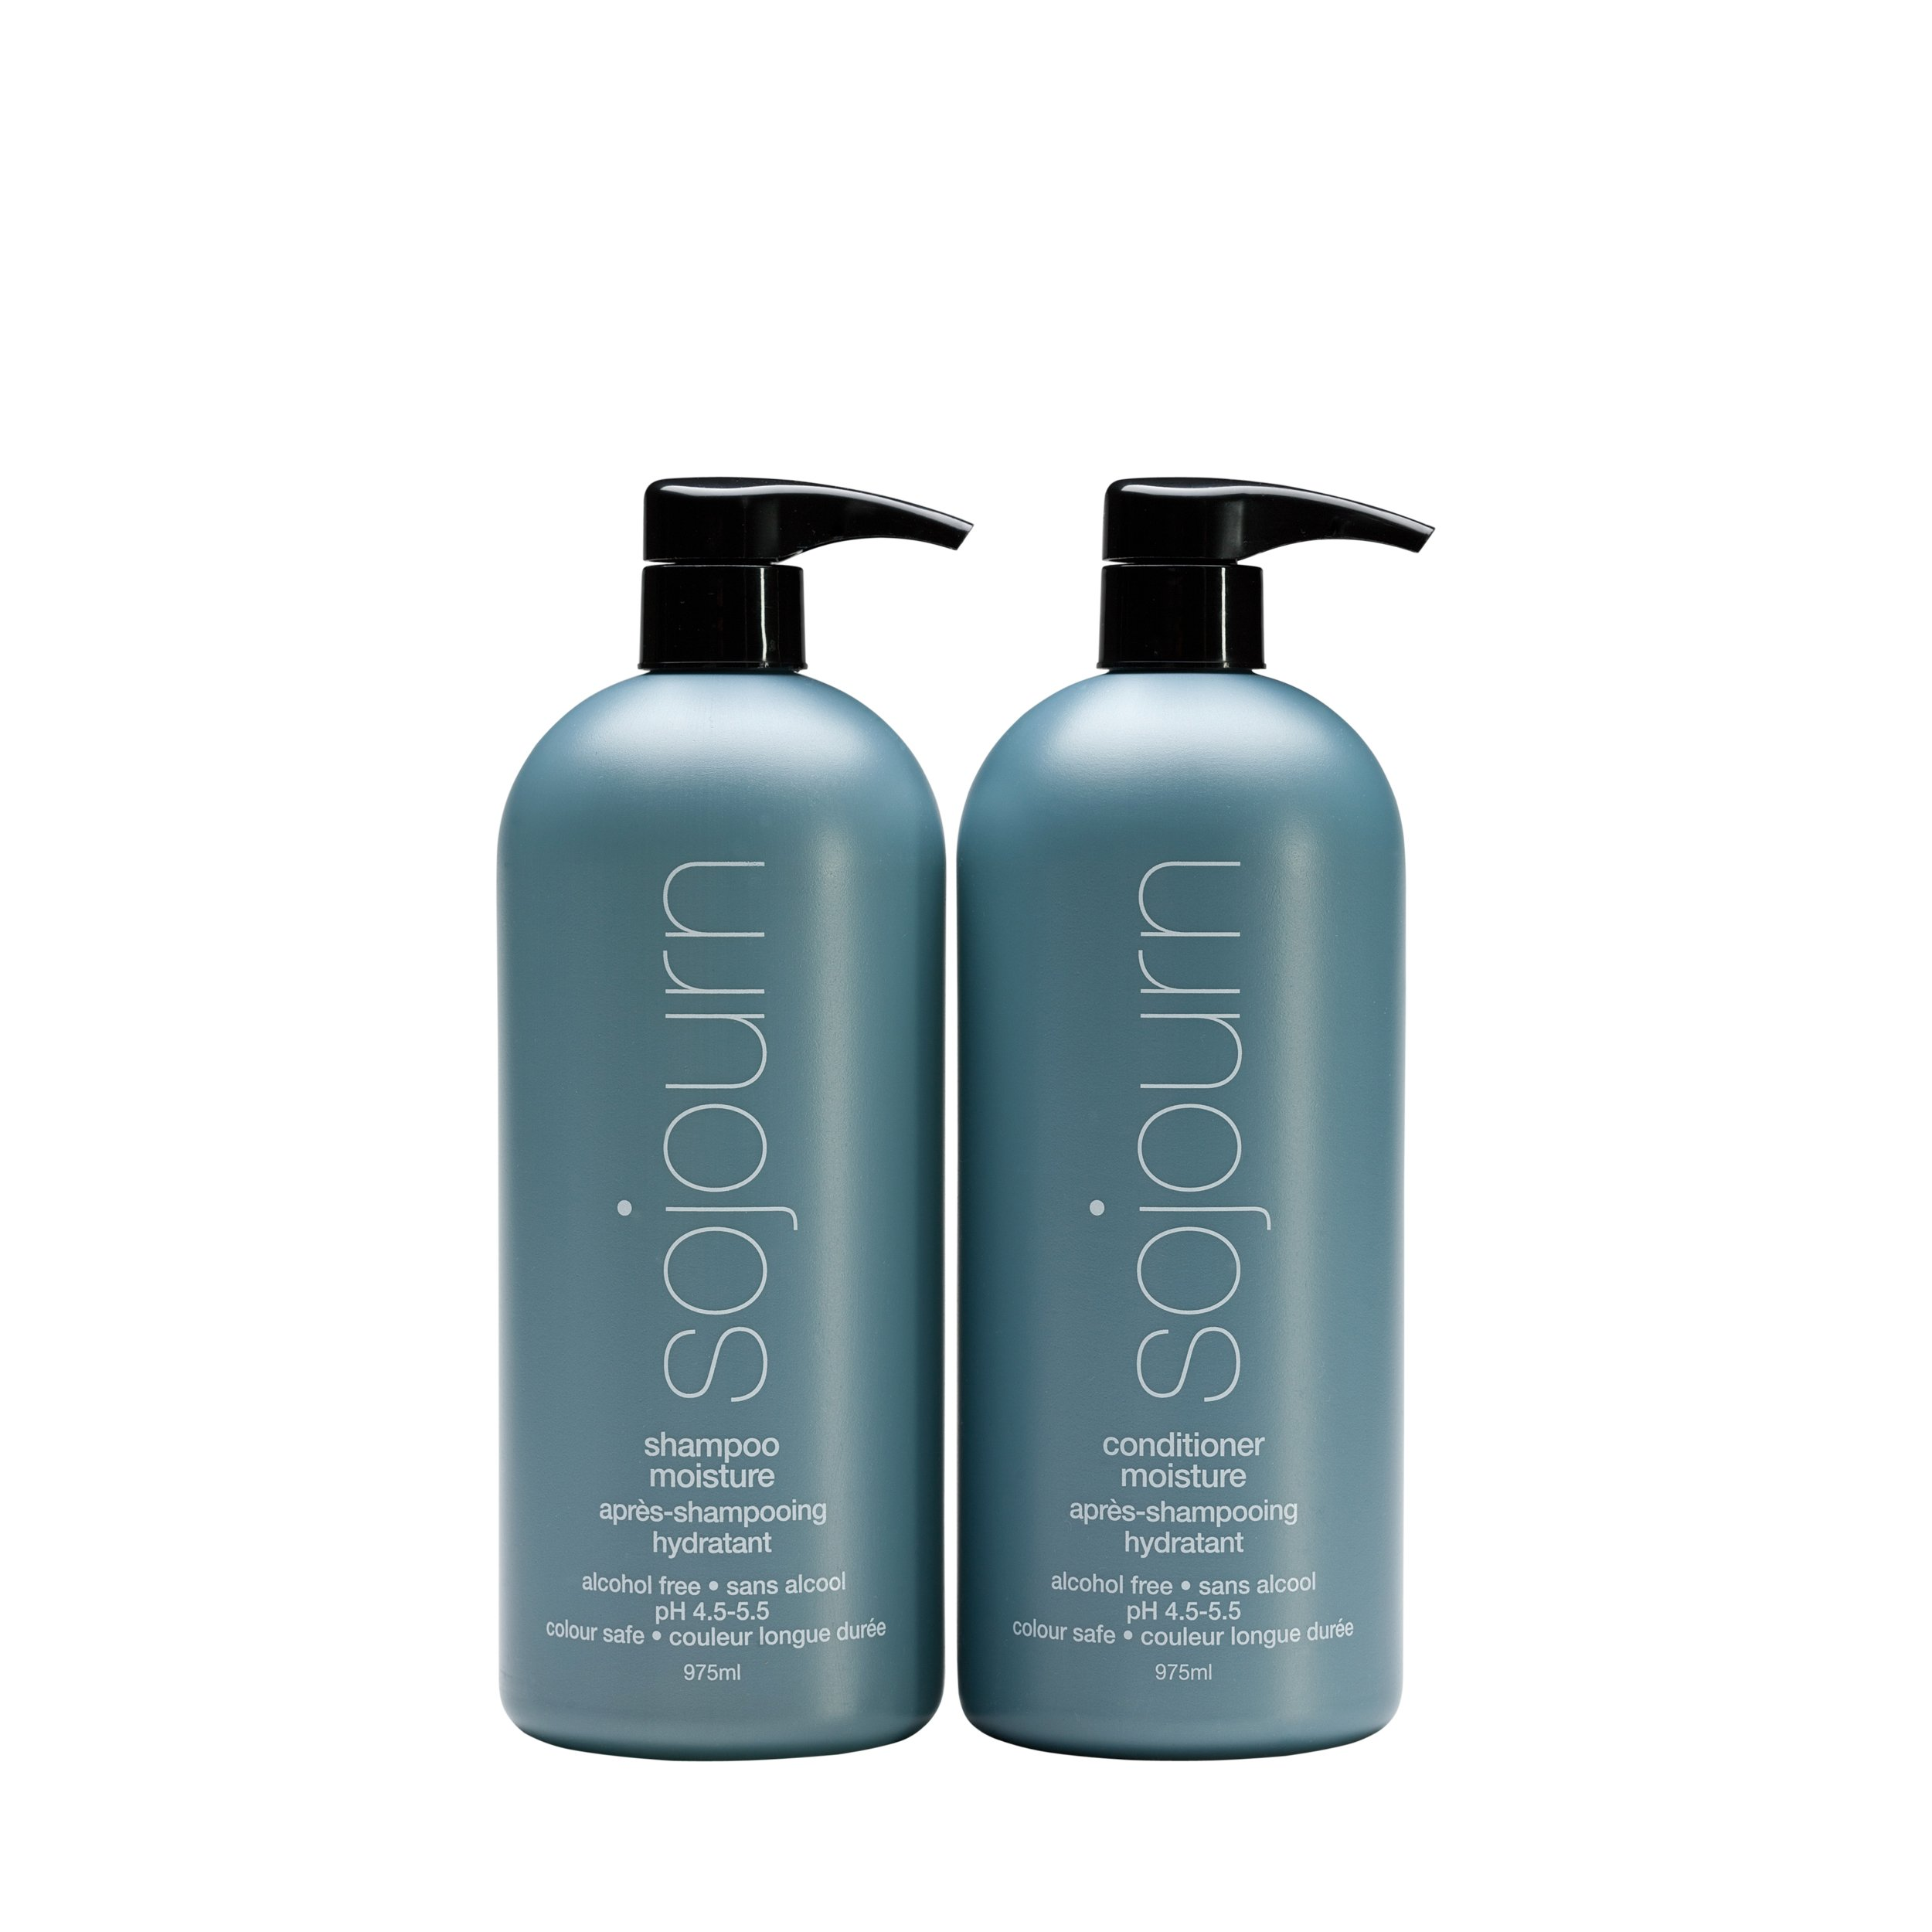 Sojourn Moisture Organic Shampoo and Conditioner Due Set With Optimal Hydration For Normal, Dry, Curly Or Thick Hair, (975ml/33 fl oz each) Color Safe, Professional Salon Recommended…